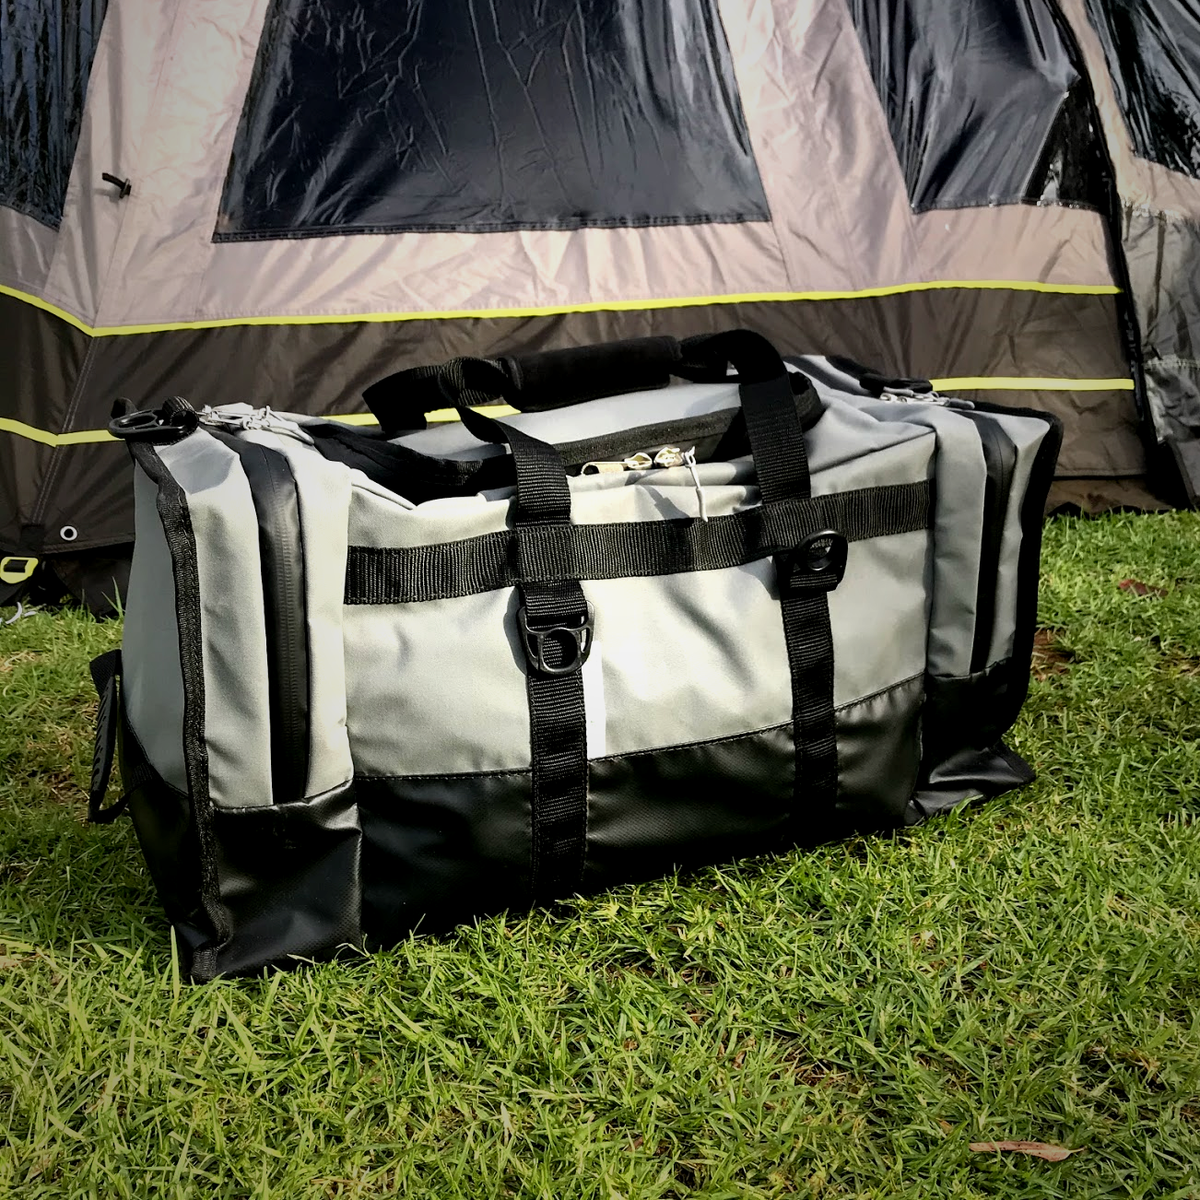 x2 Canvas Camping Bag by Outcamp